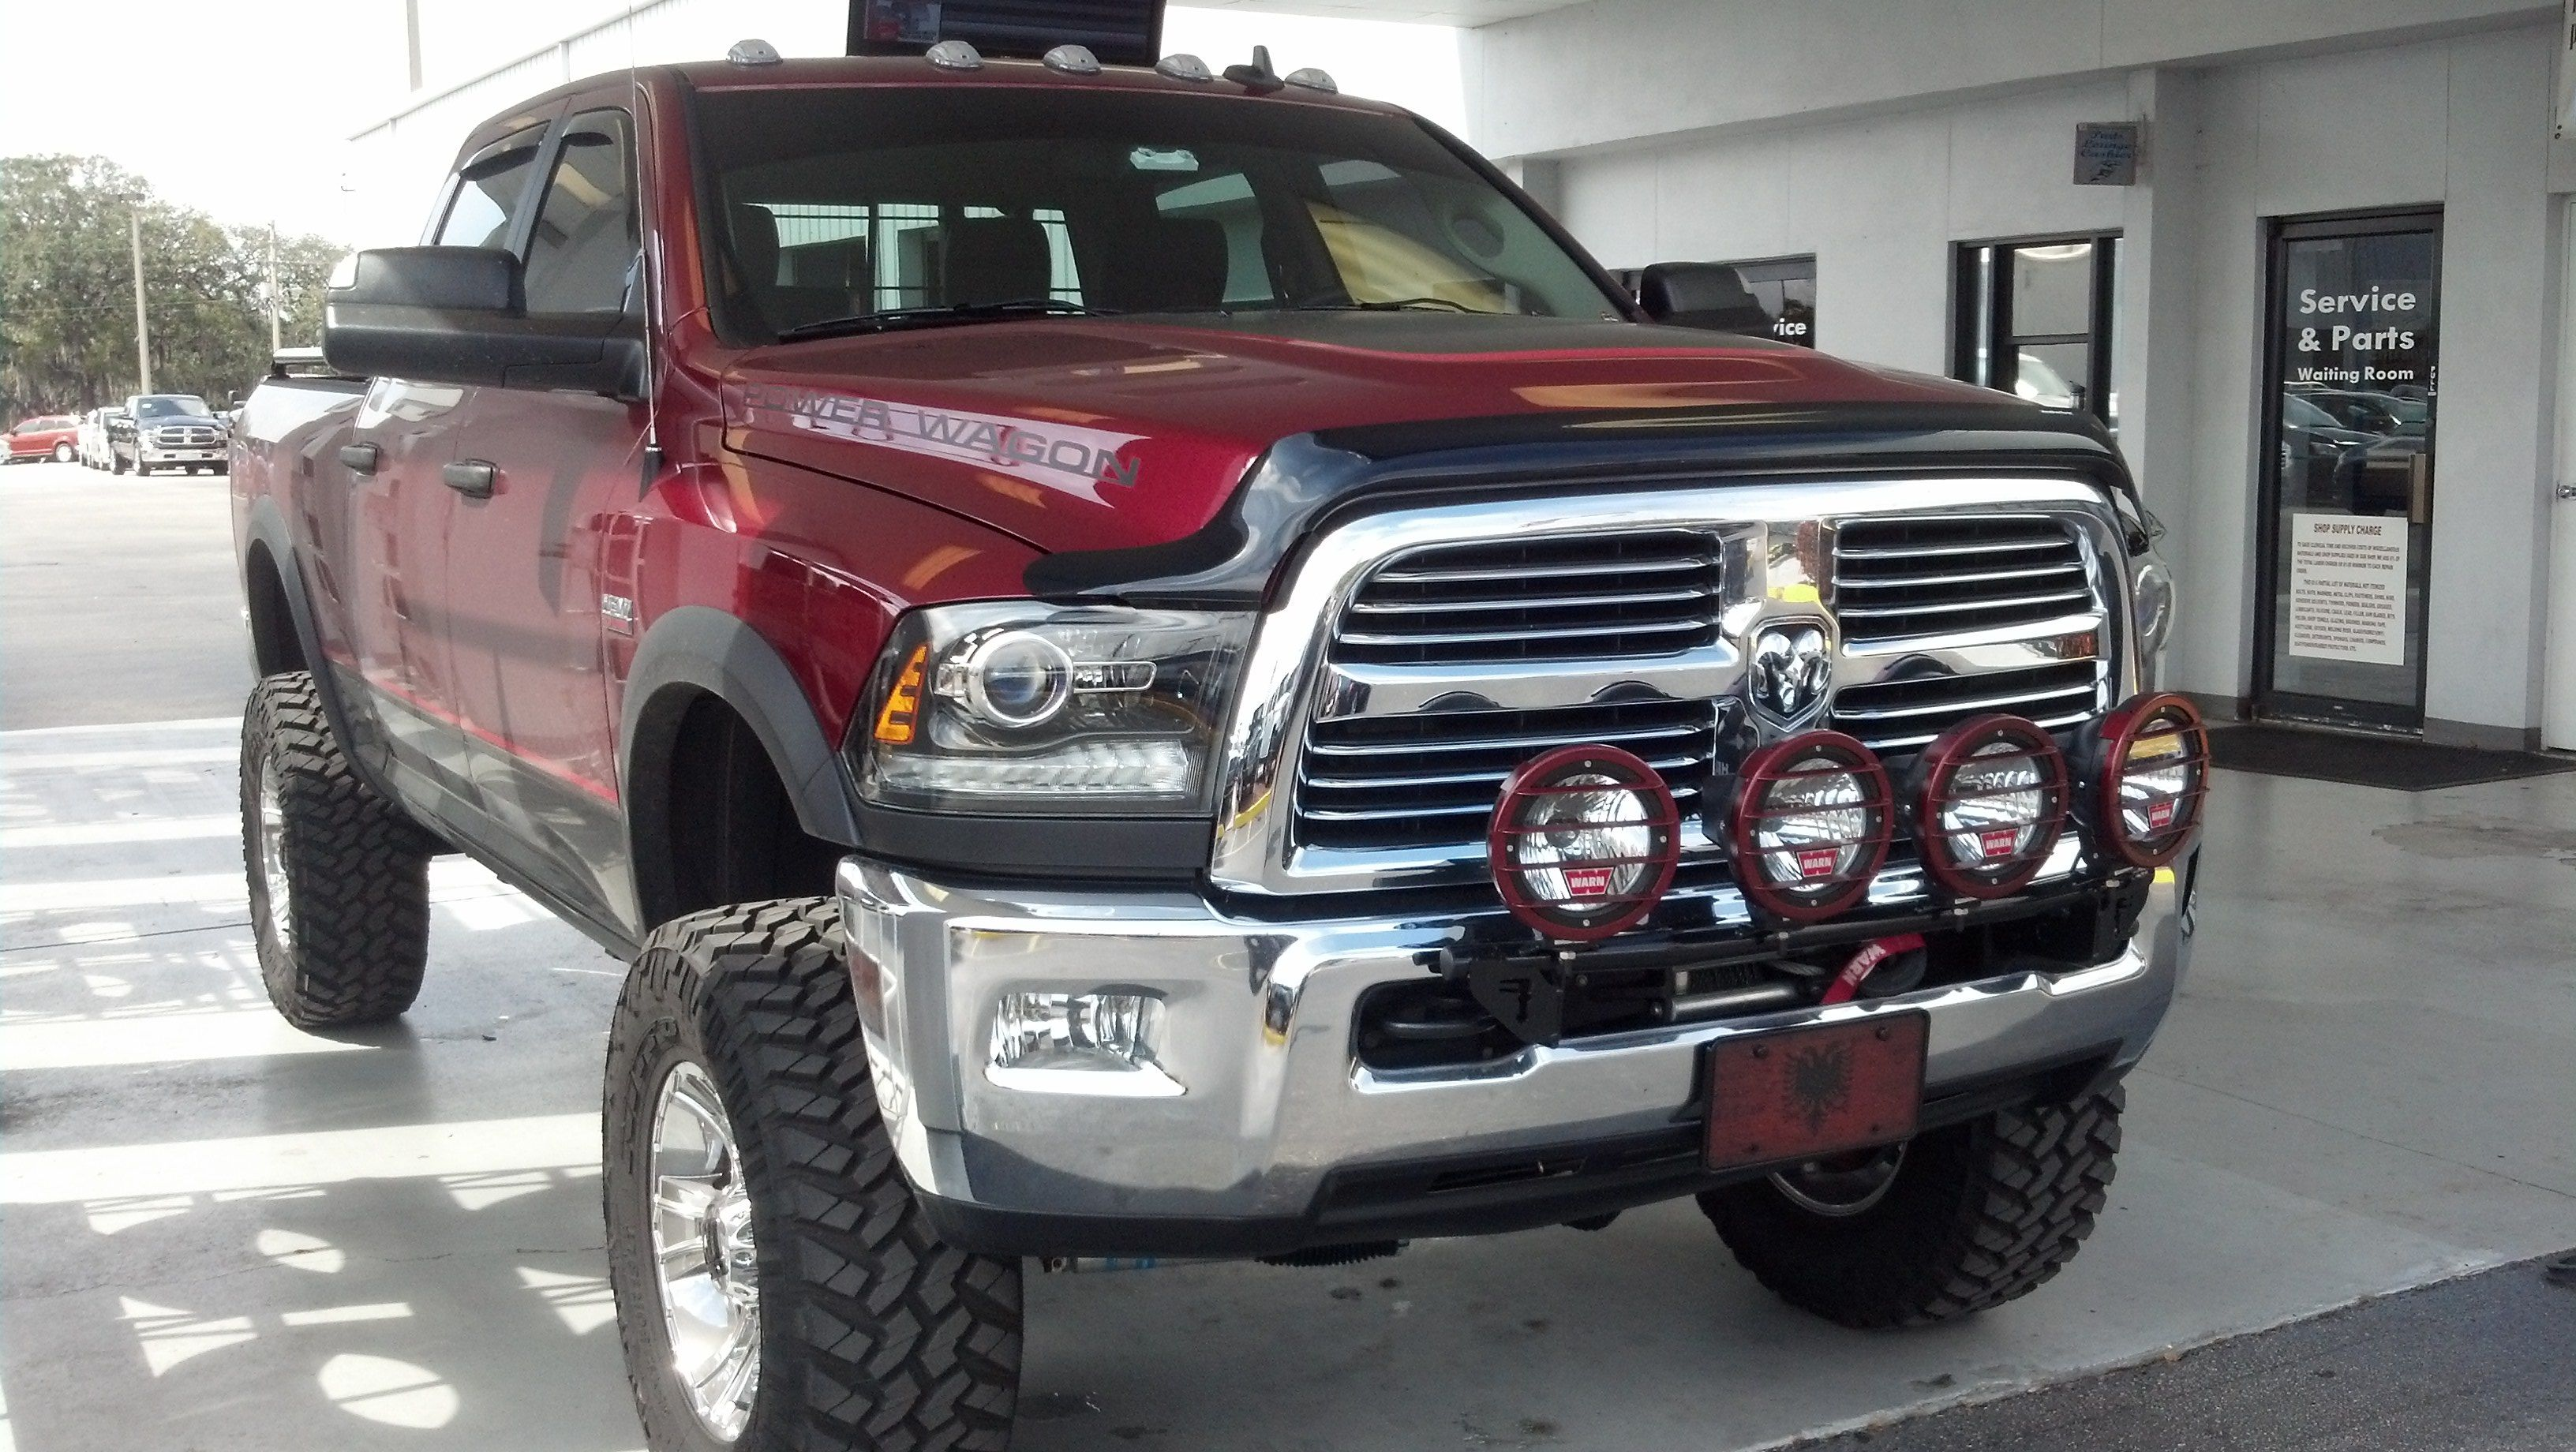 Awesome Dodge RAM Power Wagon Sold At Ferman Chrysler Jeep Dodge Of New  Port Richey!!!